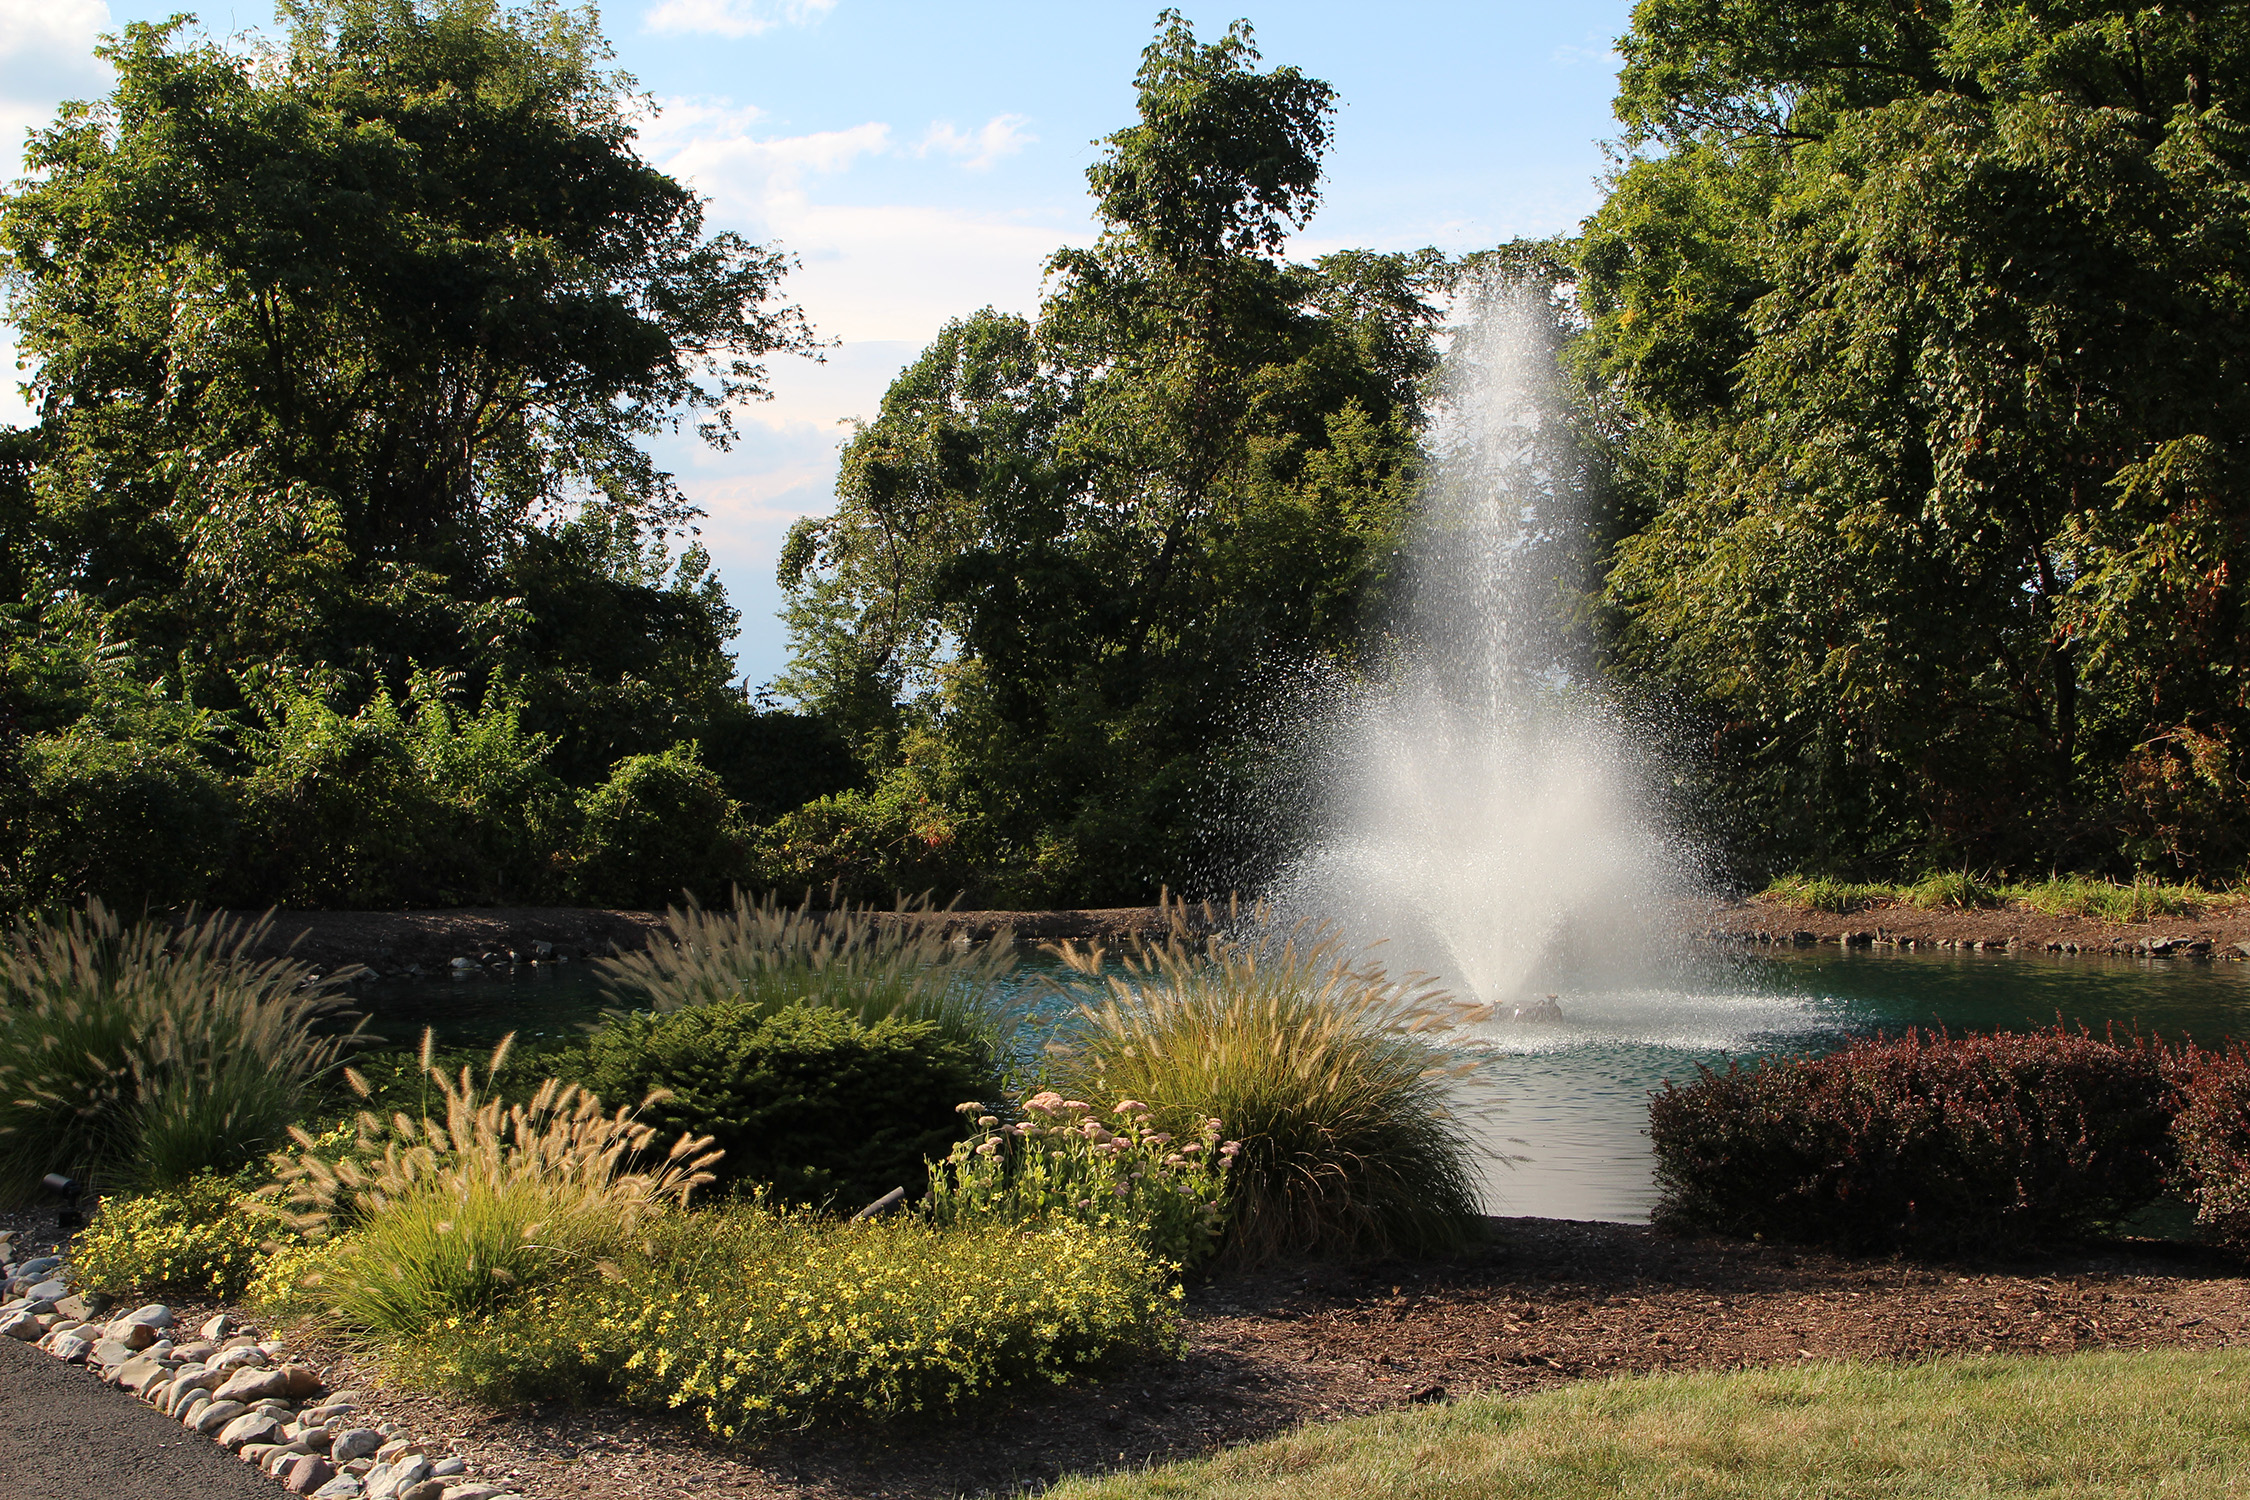 One of Otterbine's Aerating Fountains in a beautiful park